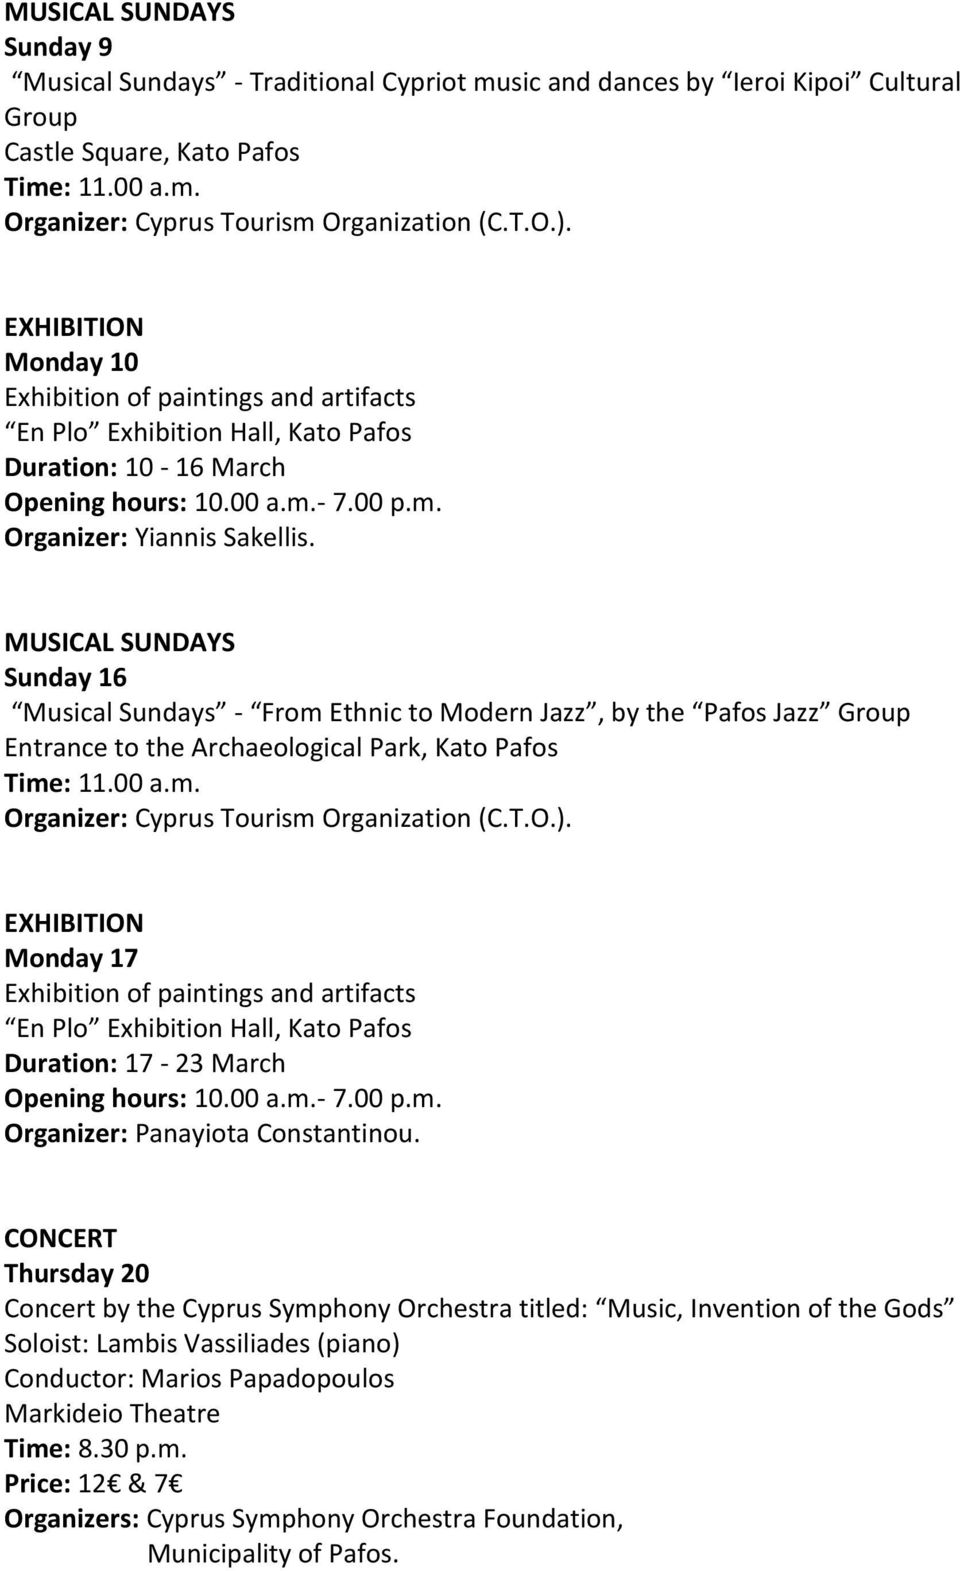 Sunday 16 Musical Sundays - From Ethnic to Modern Jazz, by the Pafos Jazz Group Entrance to the Archaeological Park, Kato Pafos EXHIBITION Monday 17 Exhibition of paintings and artifacts En Plo